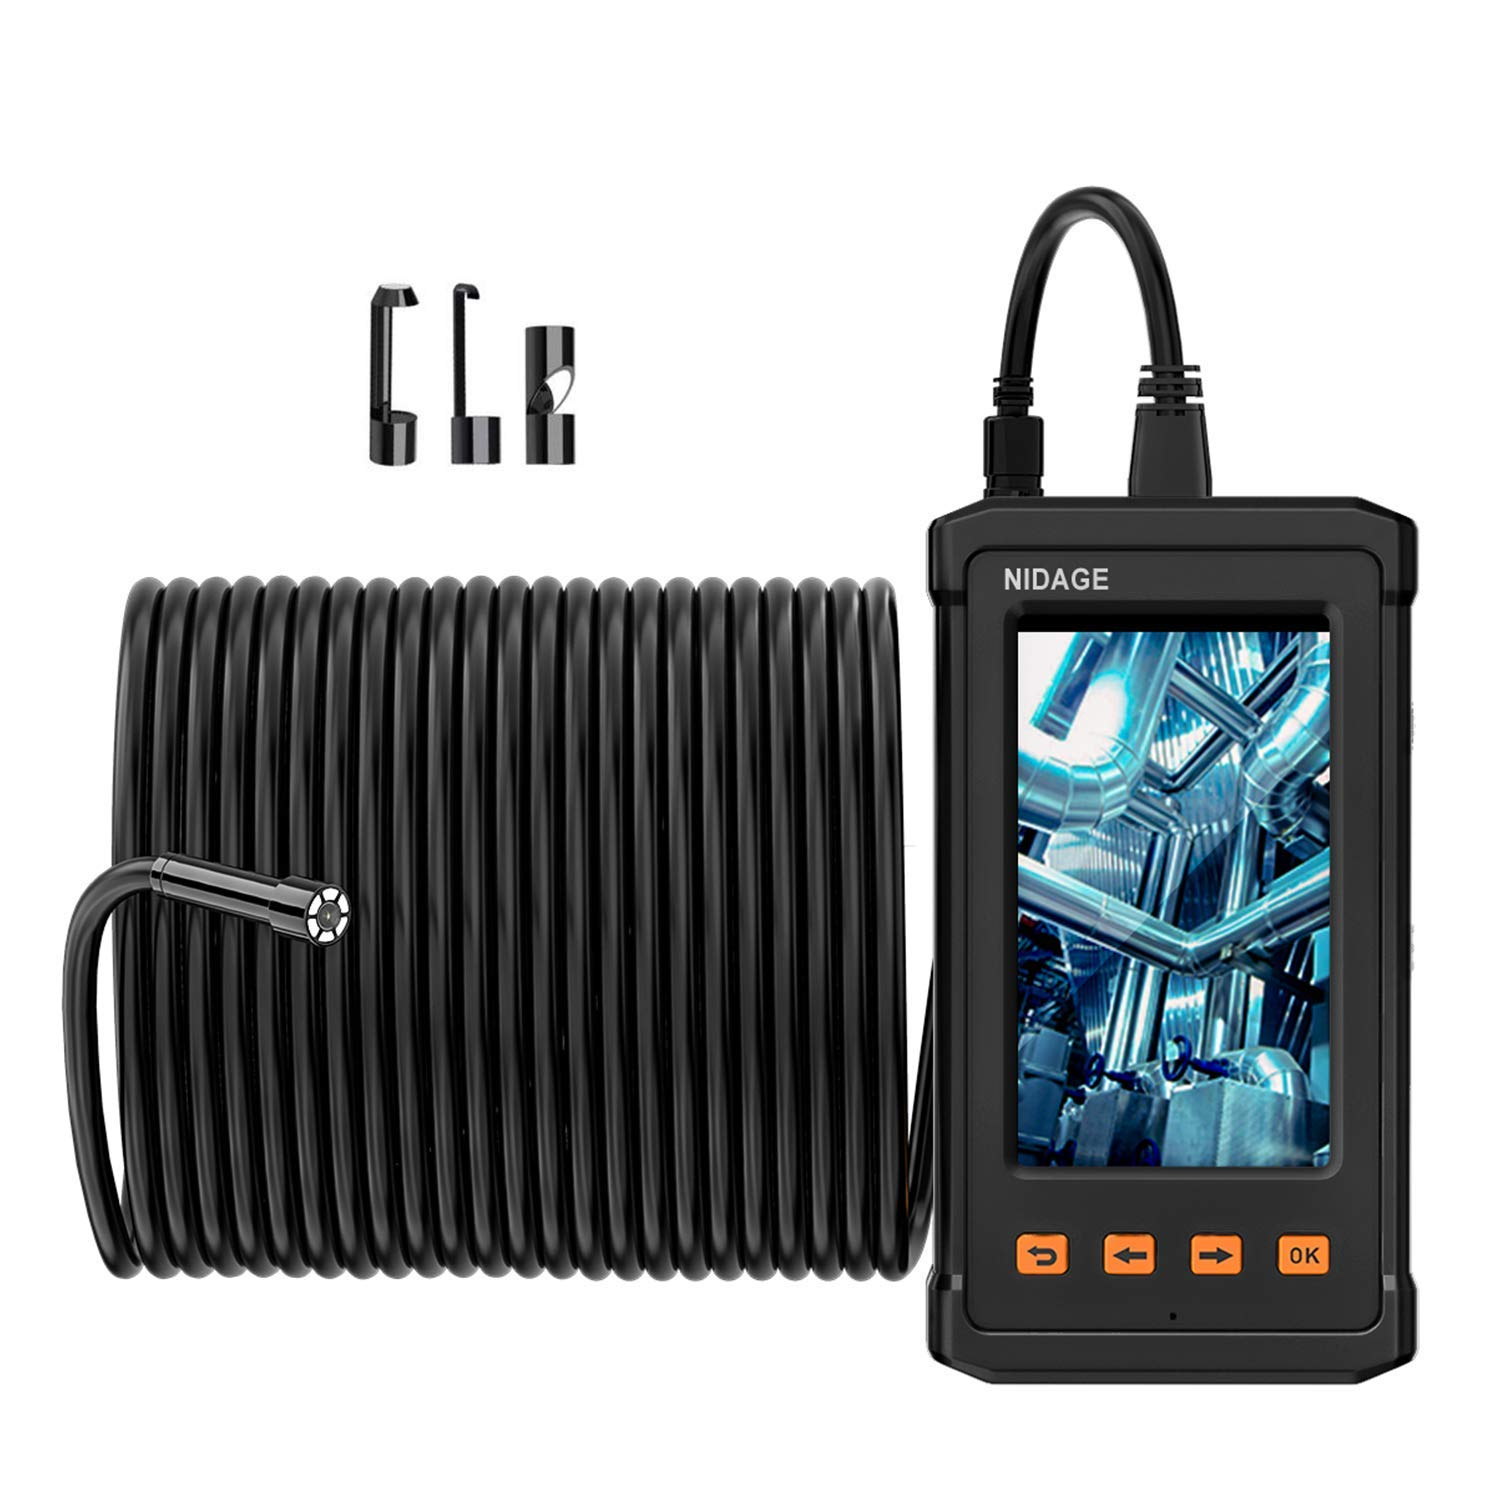 50FT NIDAGE Inspection Camera, 1080P HD Industrial Endoscope Borescope Camare with 4.3inch IPS Screen, IP67 Waterproof Pipe Duct Sewer Drain Snake Camera with Light, 2800mAh Battery, 8GB TF Card